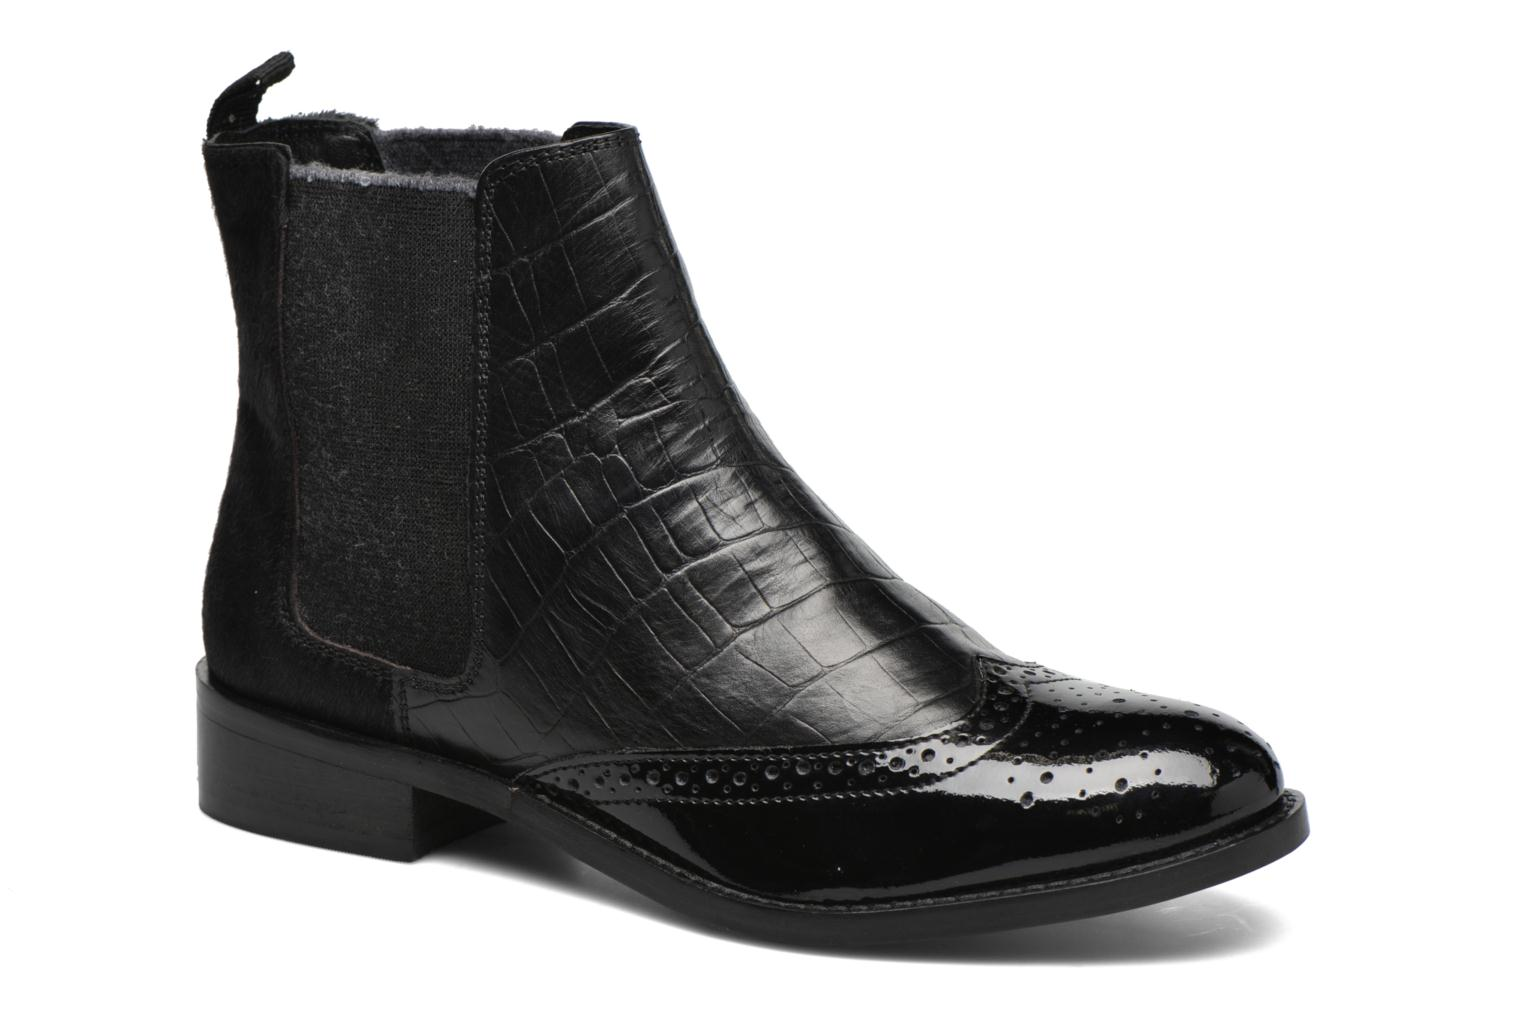 Quentin Black leather mix